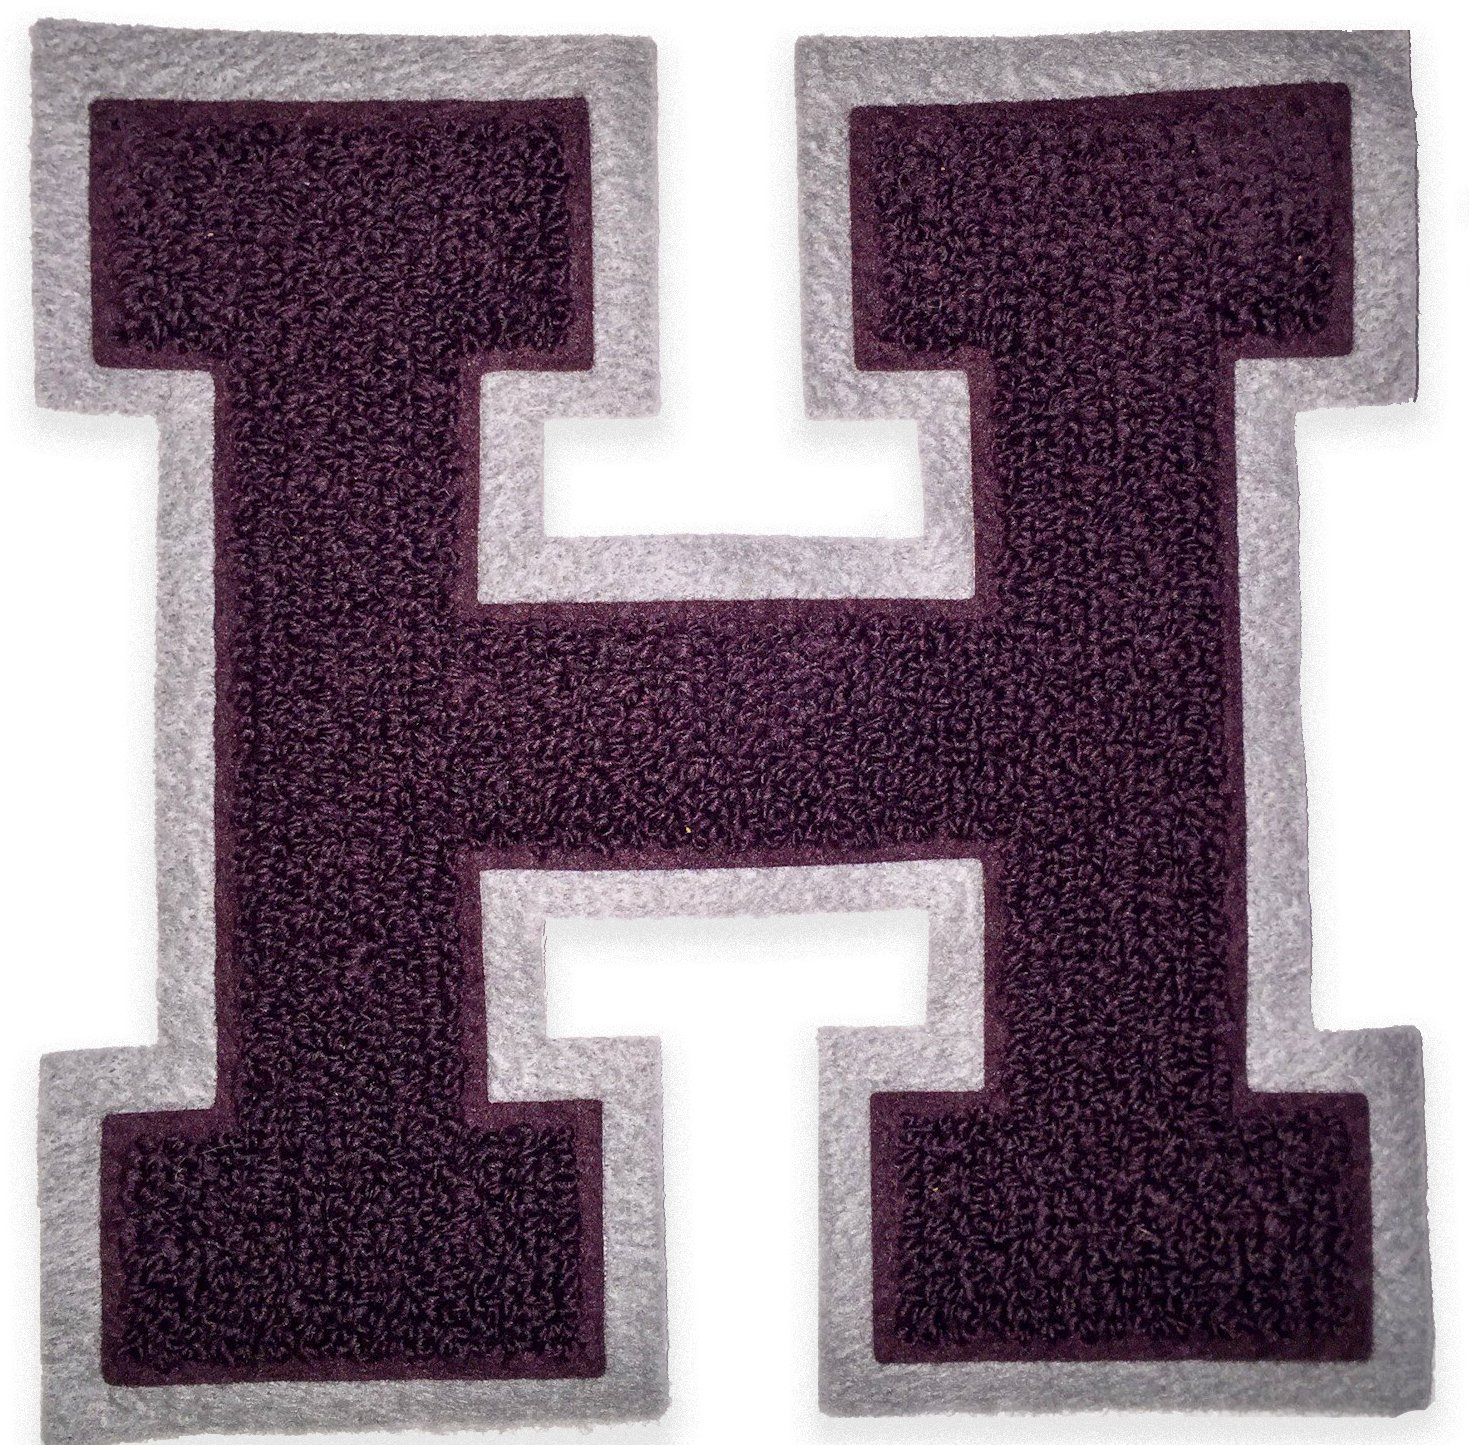 Amazon chenille varsity letterman jacket patch h capital letter amazon chenille varsity letterman jacket patch h capital letter premium quality embroidered arts crafts sewing thecheapjerseys Choice Image